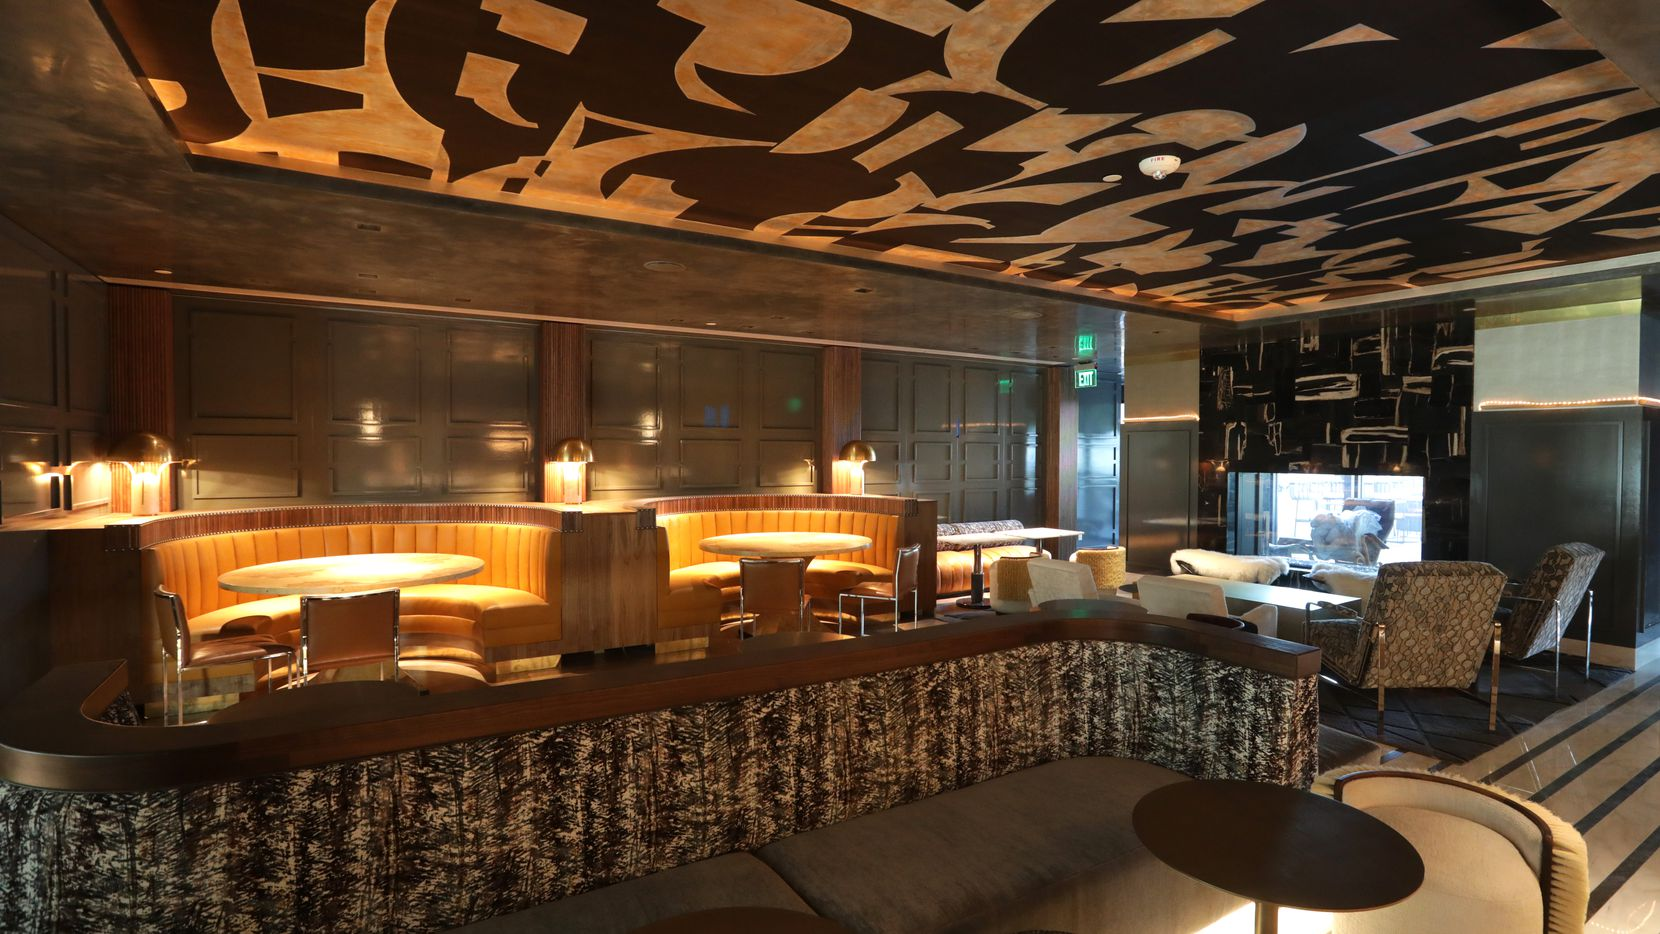 At Thompson hotel in Dallas, a restaurant and bar on the tenth floor named Catbird is opening at the end of November.